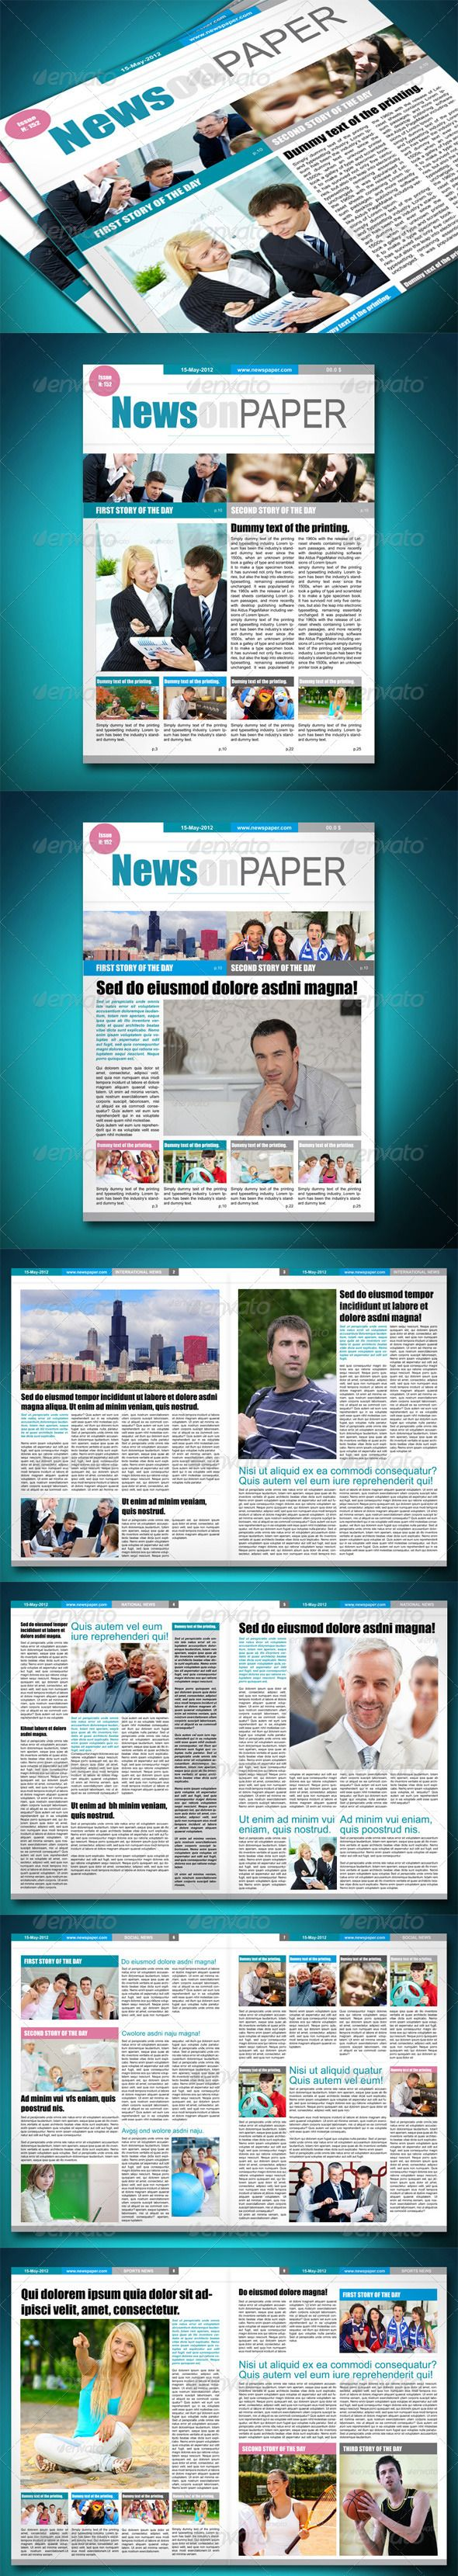 Newspaper Template - Newsletter Template InDesign INDD. Download here: http://graphicriver.net/item/newspaper-template/2357819?s_rank=435&ref=yinkira